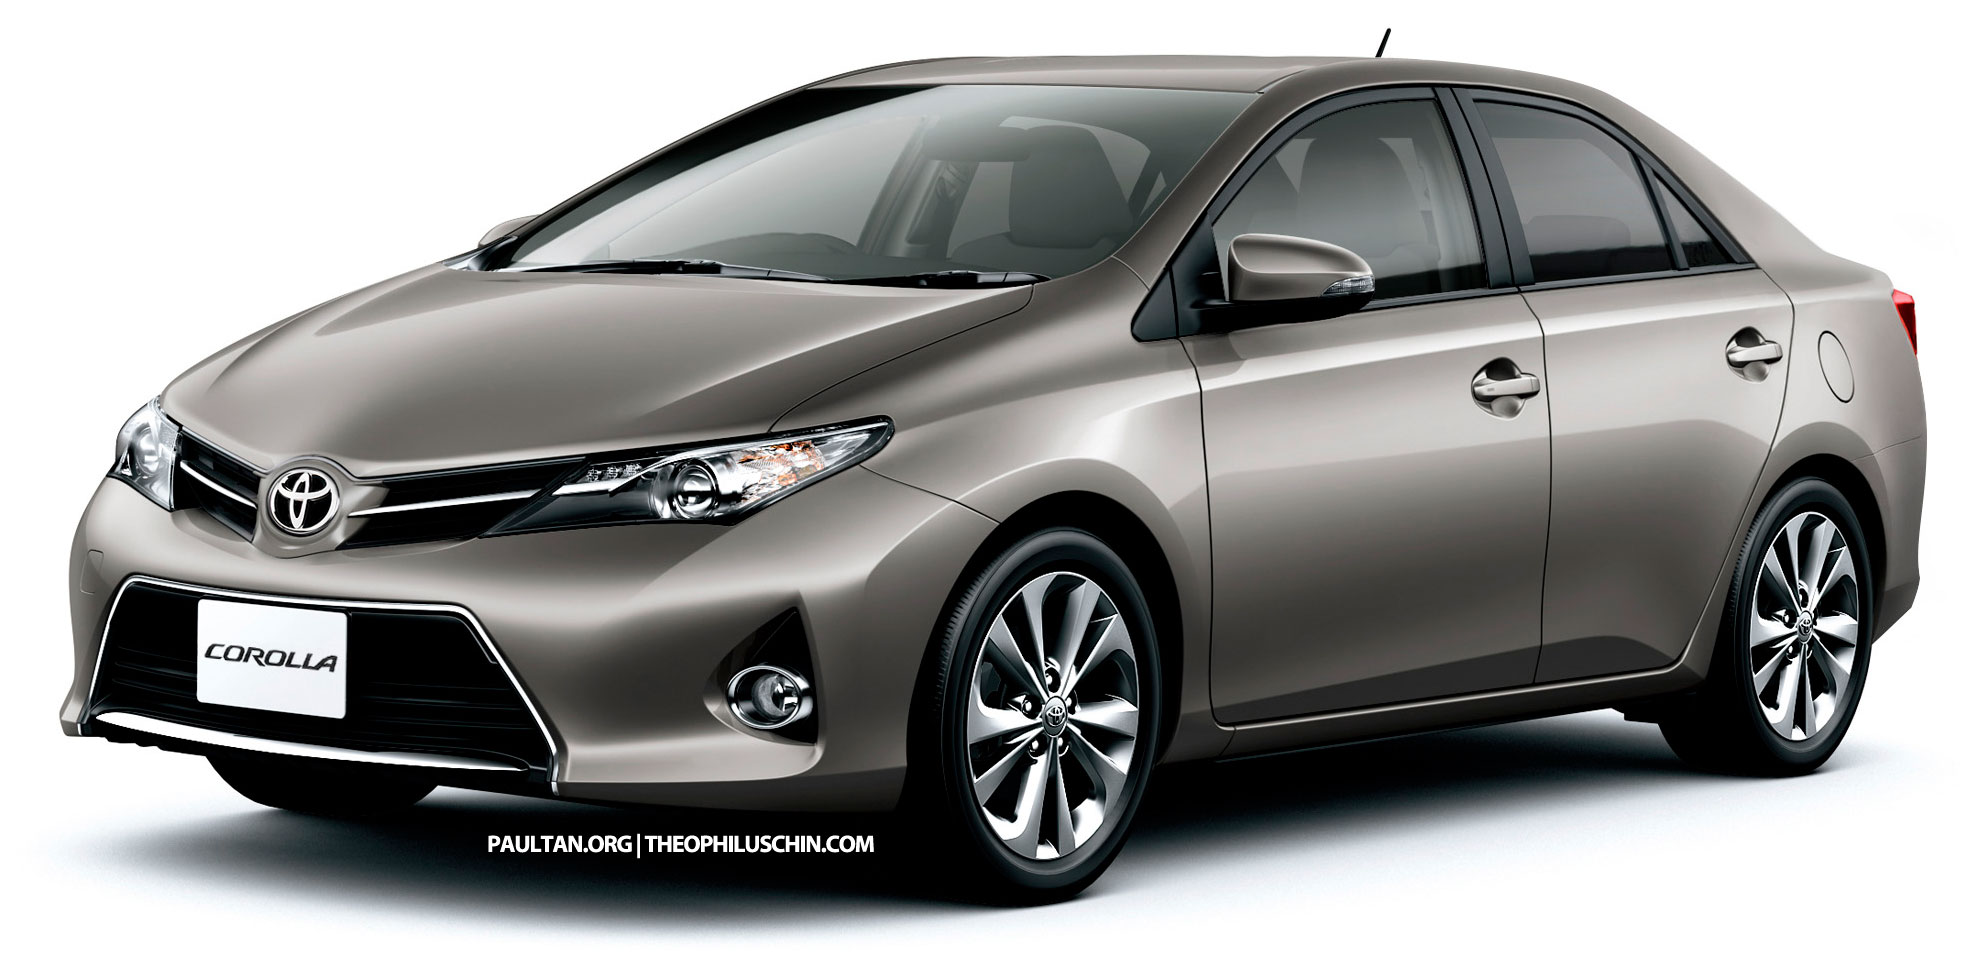 rendering of the 2014 Toyota Corolla by extending the Auris hatch.